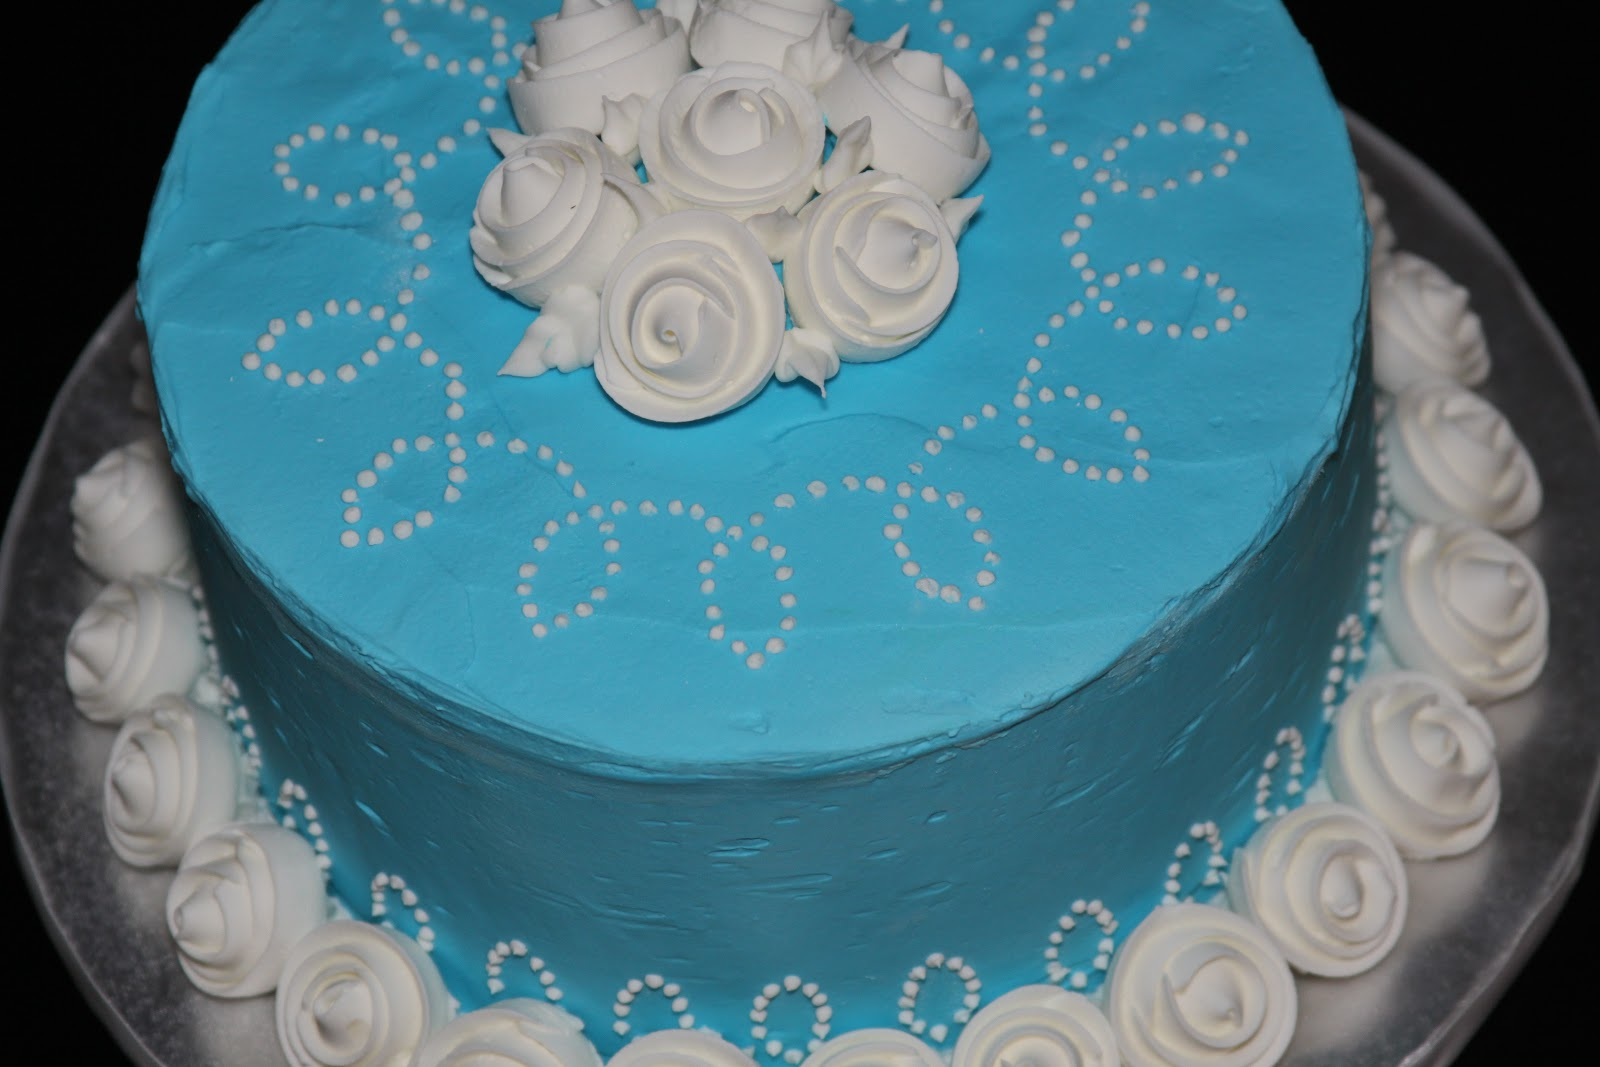 Fondant Cake Decorating Classes Michaels : Wilton Decorating with Brooke Lakey at Michaels